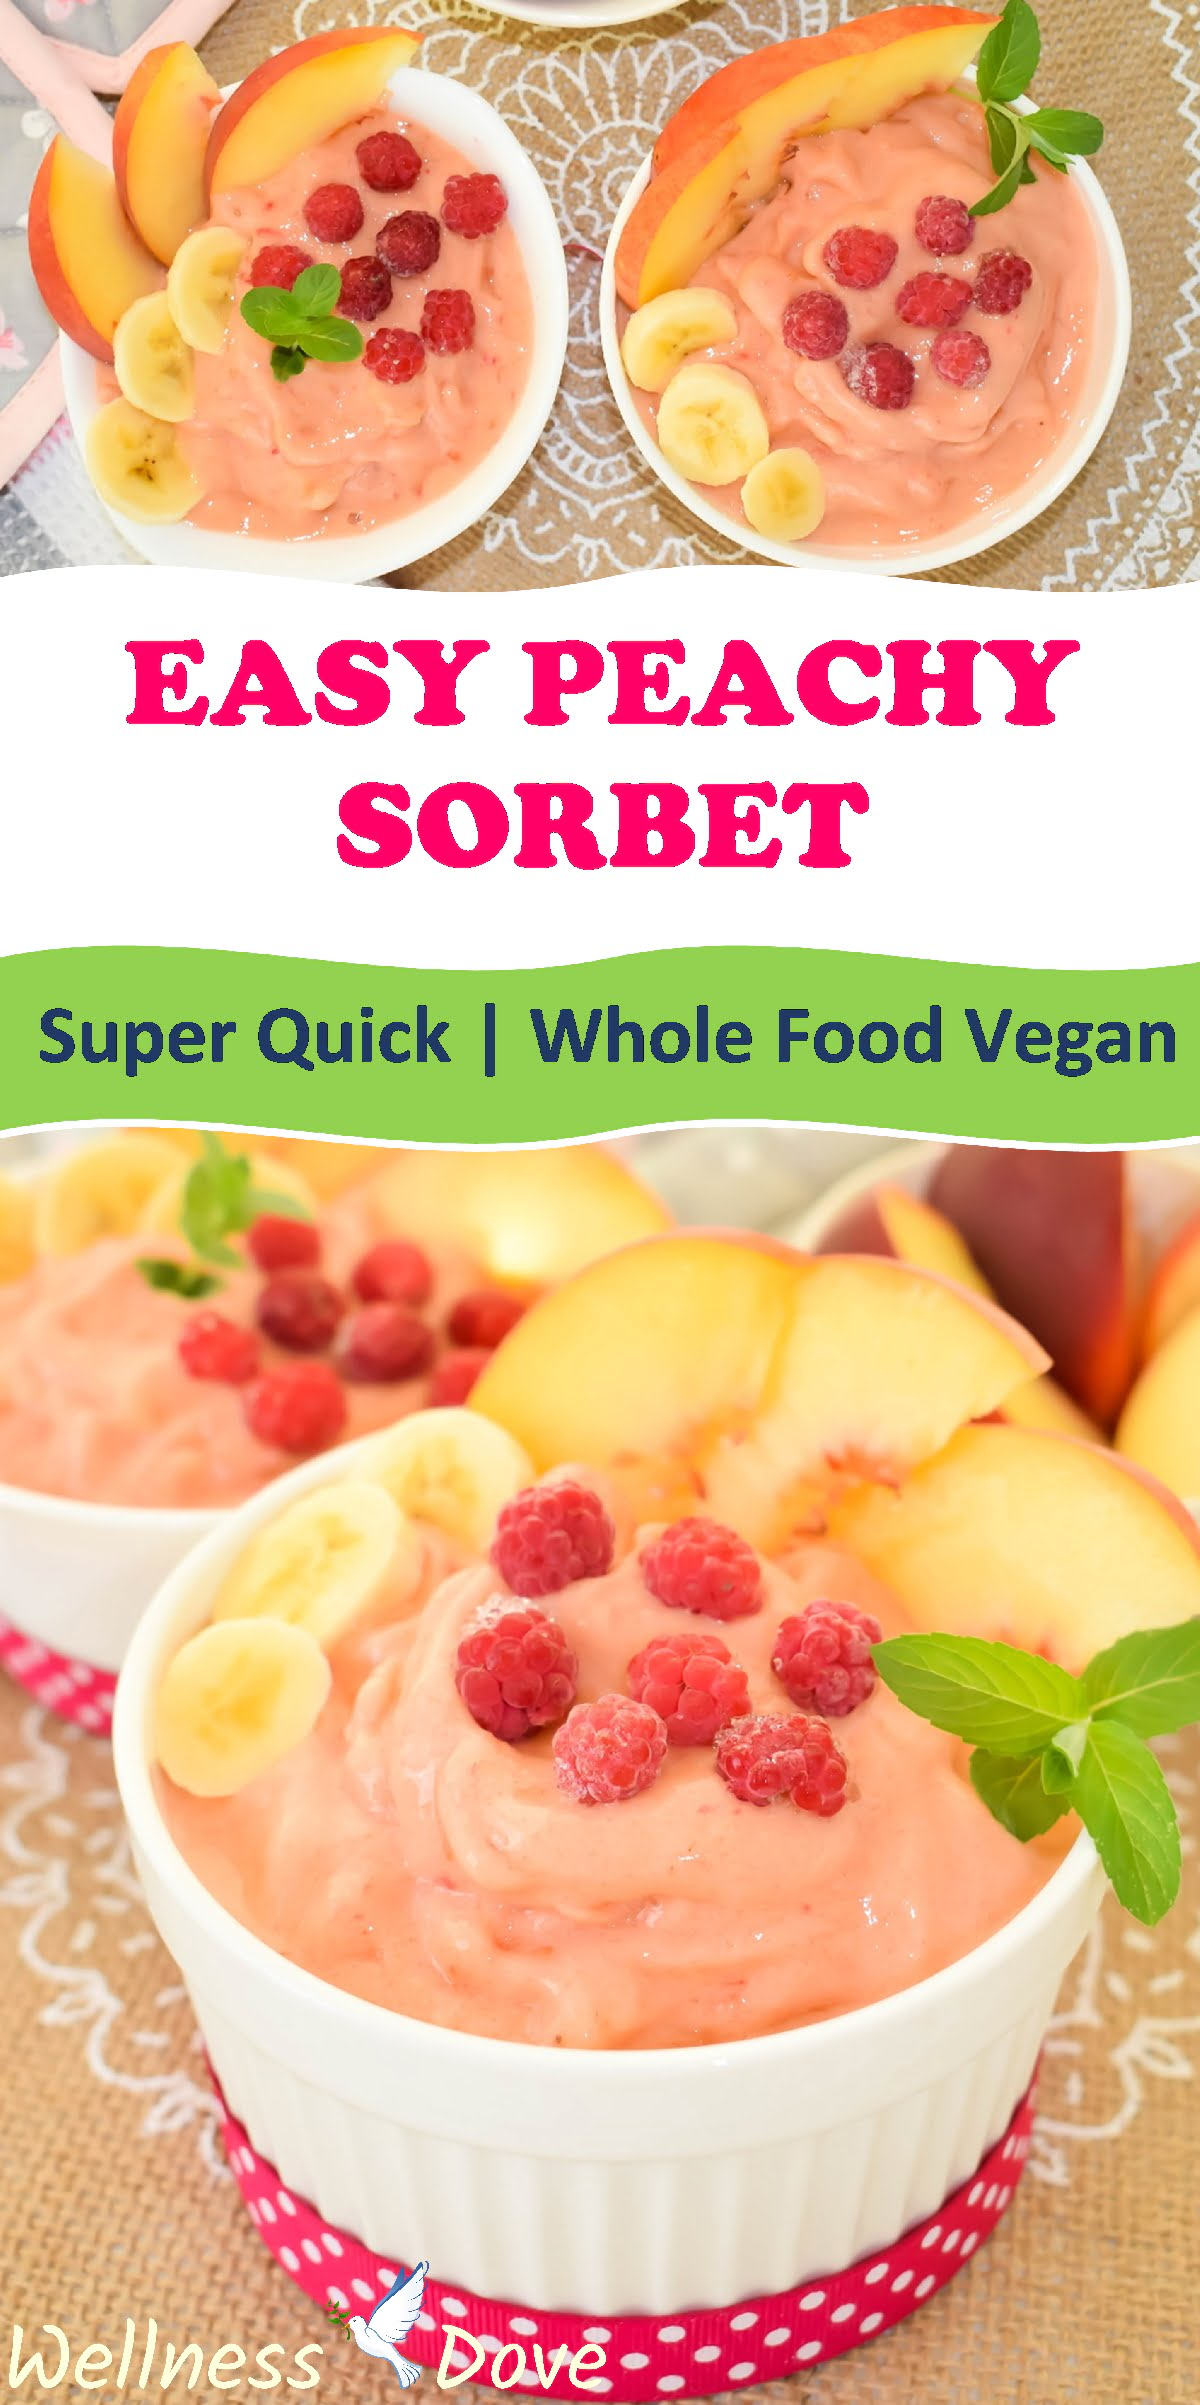 This is a simple and healthy, plant-based frozen dessert. Whole natural plant ingredients. Super fresh and delightful!   Vegan